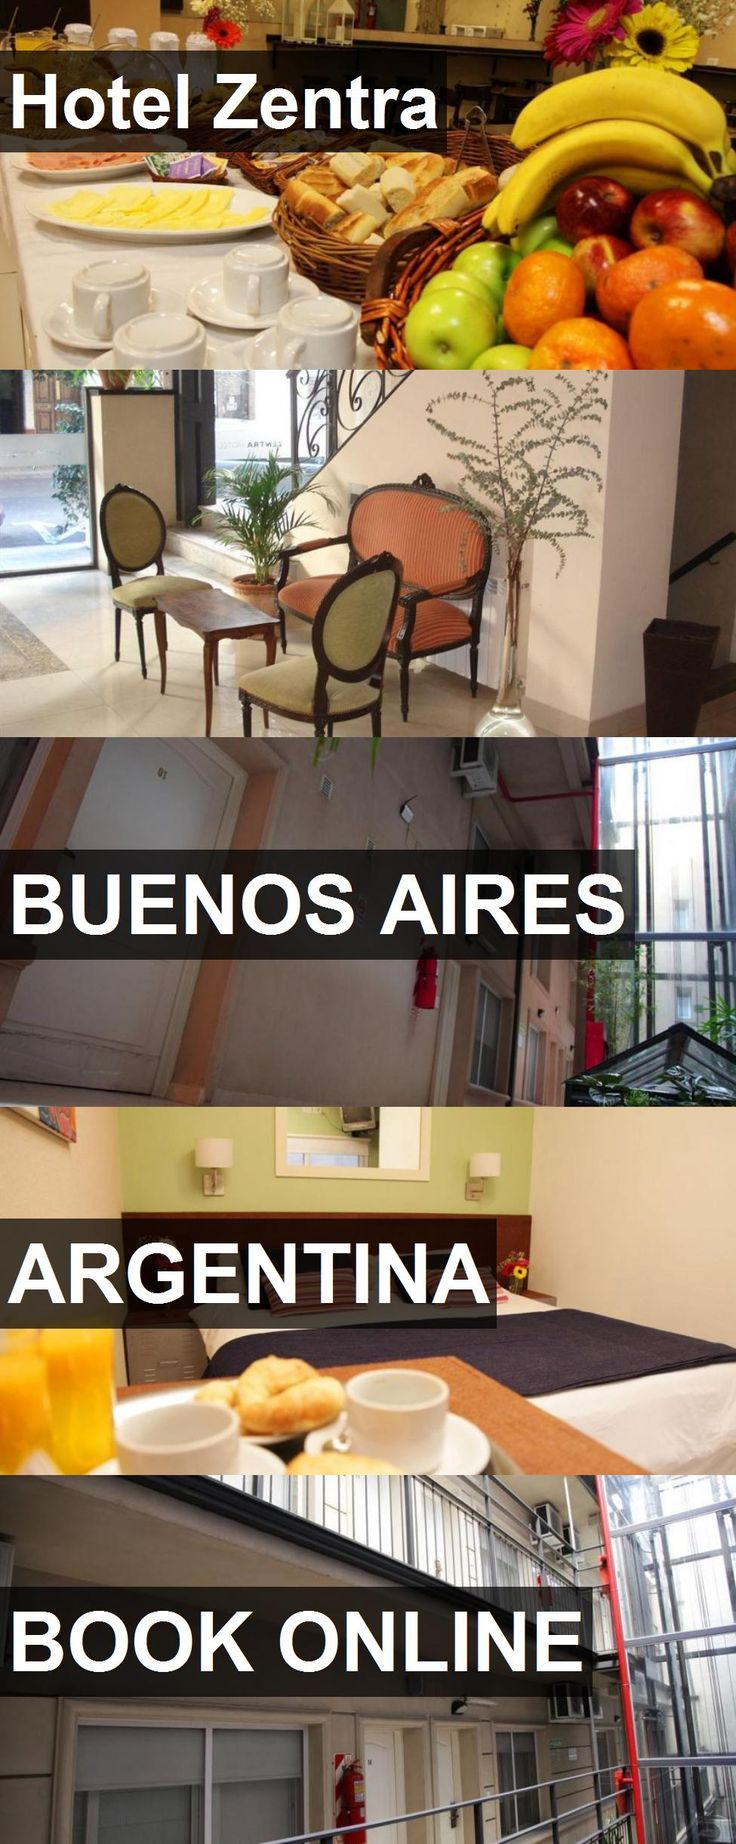 Hotel Hotel Zentra in Buenos Aires, Argentina. For more information, photos, reviews and best prices please follow the link. #Argentina #BuenosAires #HotelZentra #hotel #travel #vacation